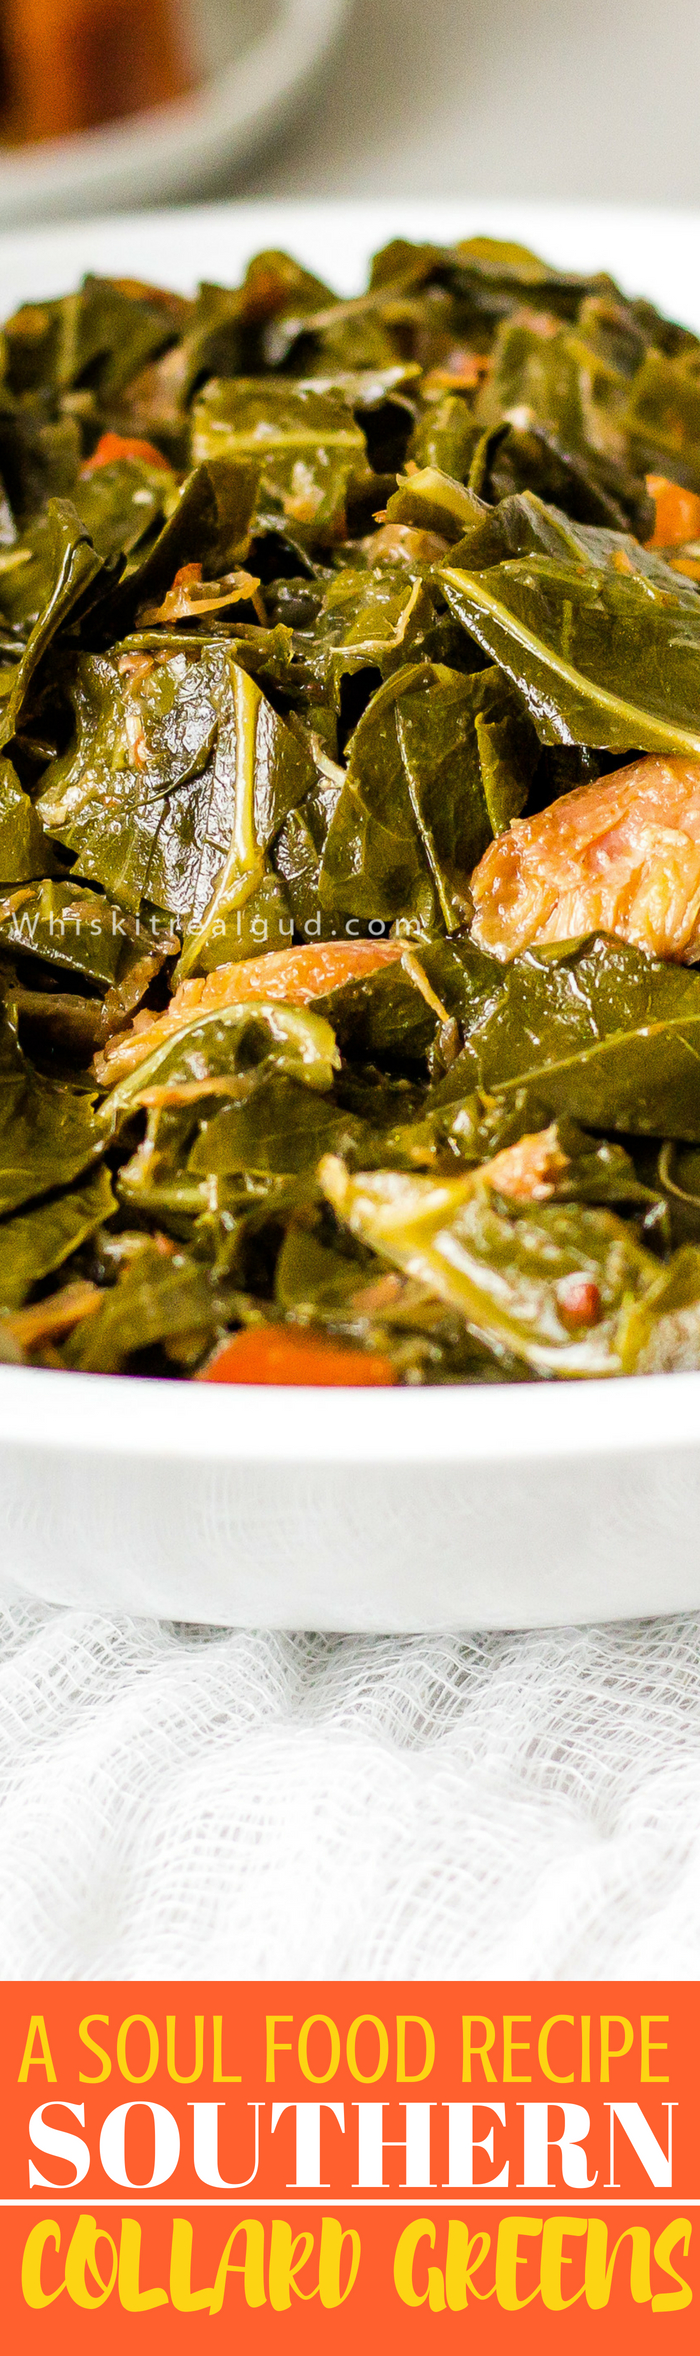 Southern Soul Food Collard Greens Recipe simmered in chicken broth with smoked turkey wings, green and red peppers, onions, garlic, white vinegar, red pepper flakes make this dish so tasty. No one will complain about not having enough meat with these hearty and flavorful collard greens.  Perfect for Thanksgiving or any day of the week. Check out the entire post and the easy step by step pic tutorial!